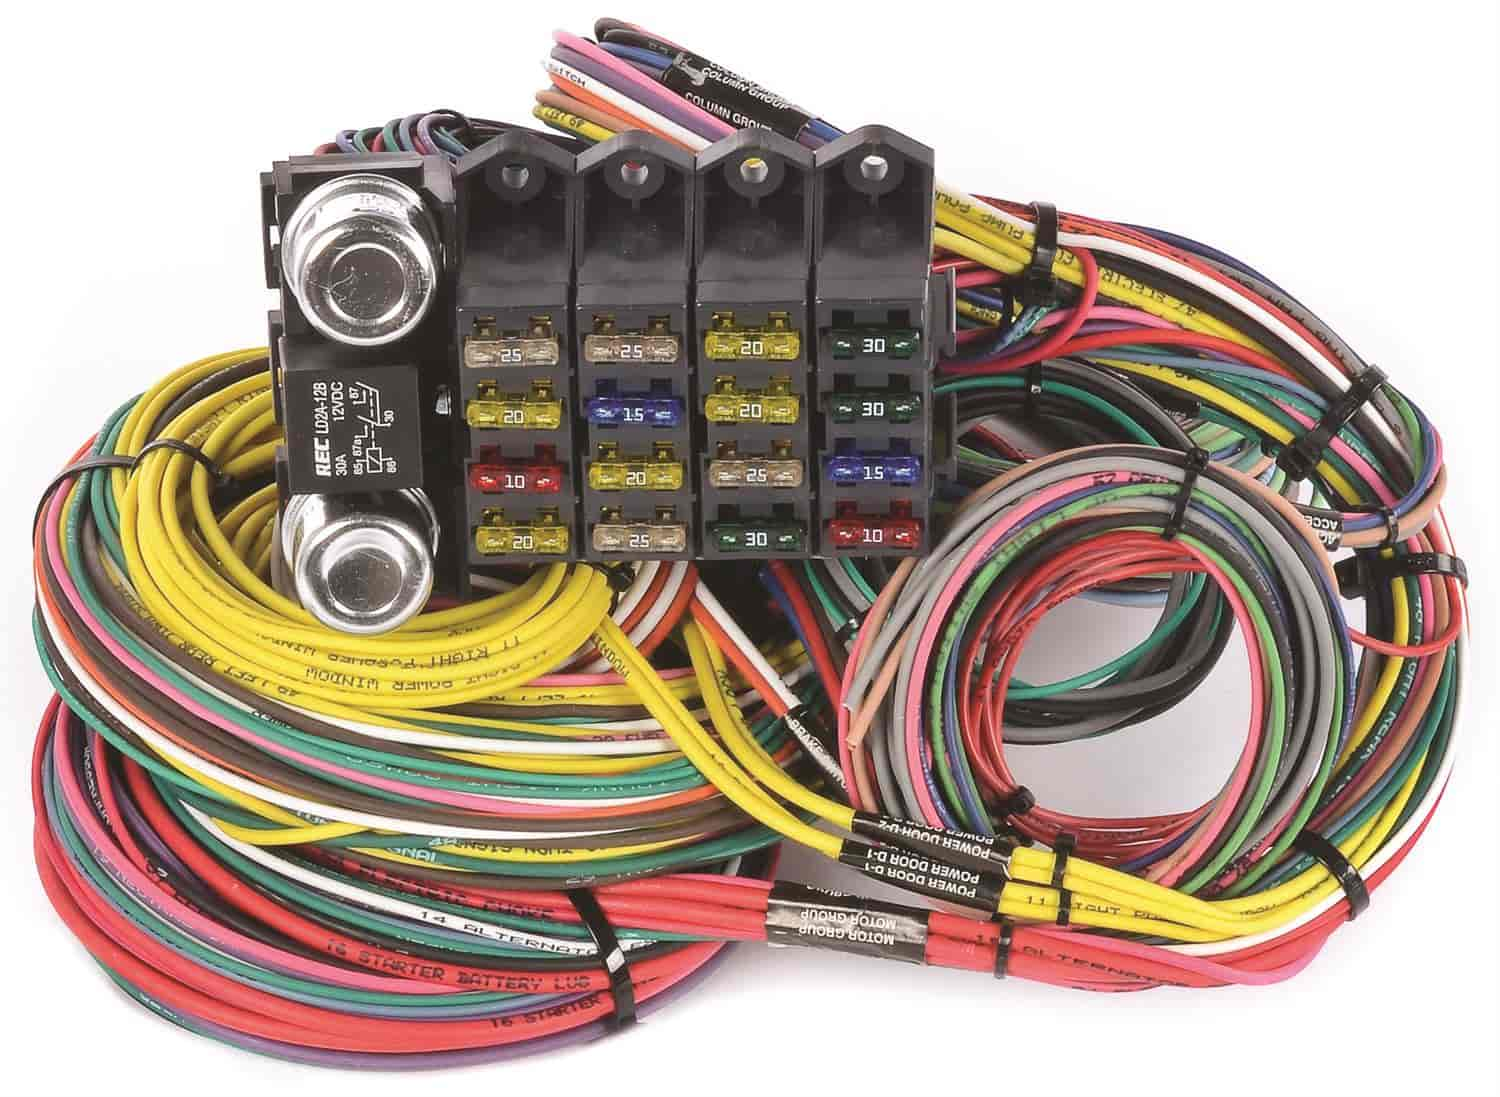 555 10405 jegs performance products 10405 universal wiring harness, 20 jegs universal wiring harness at edmiracle.co